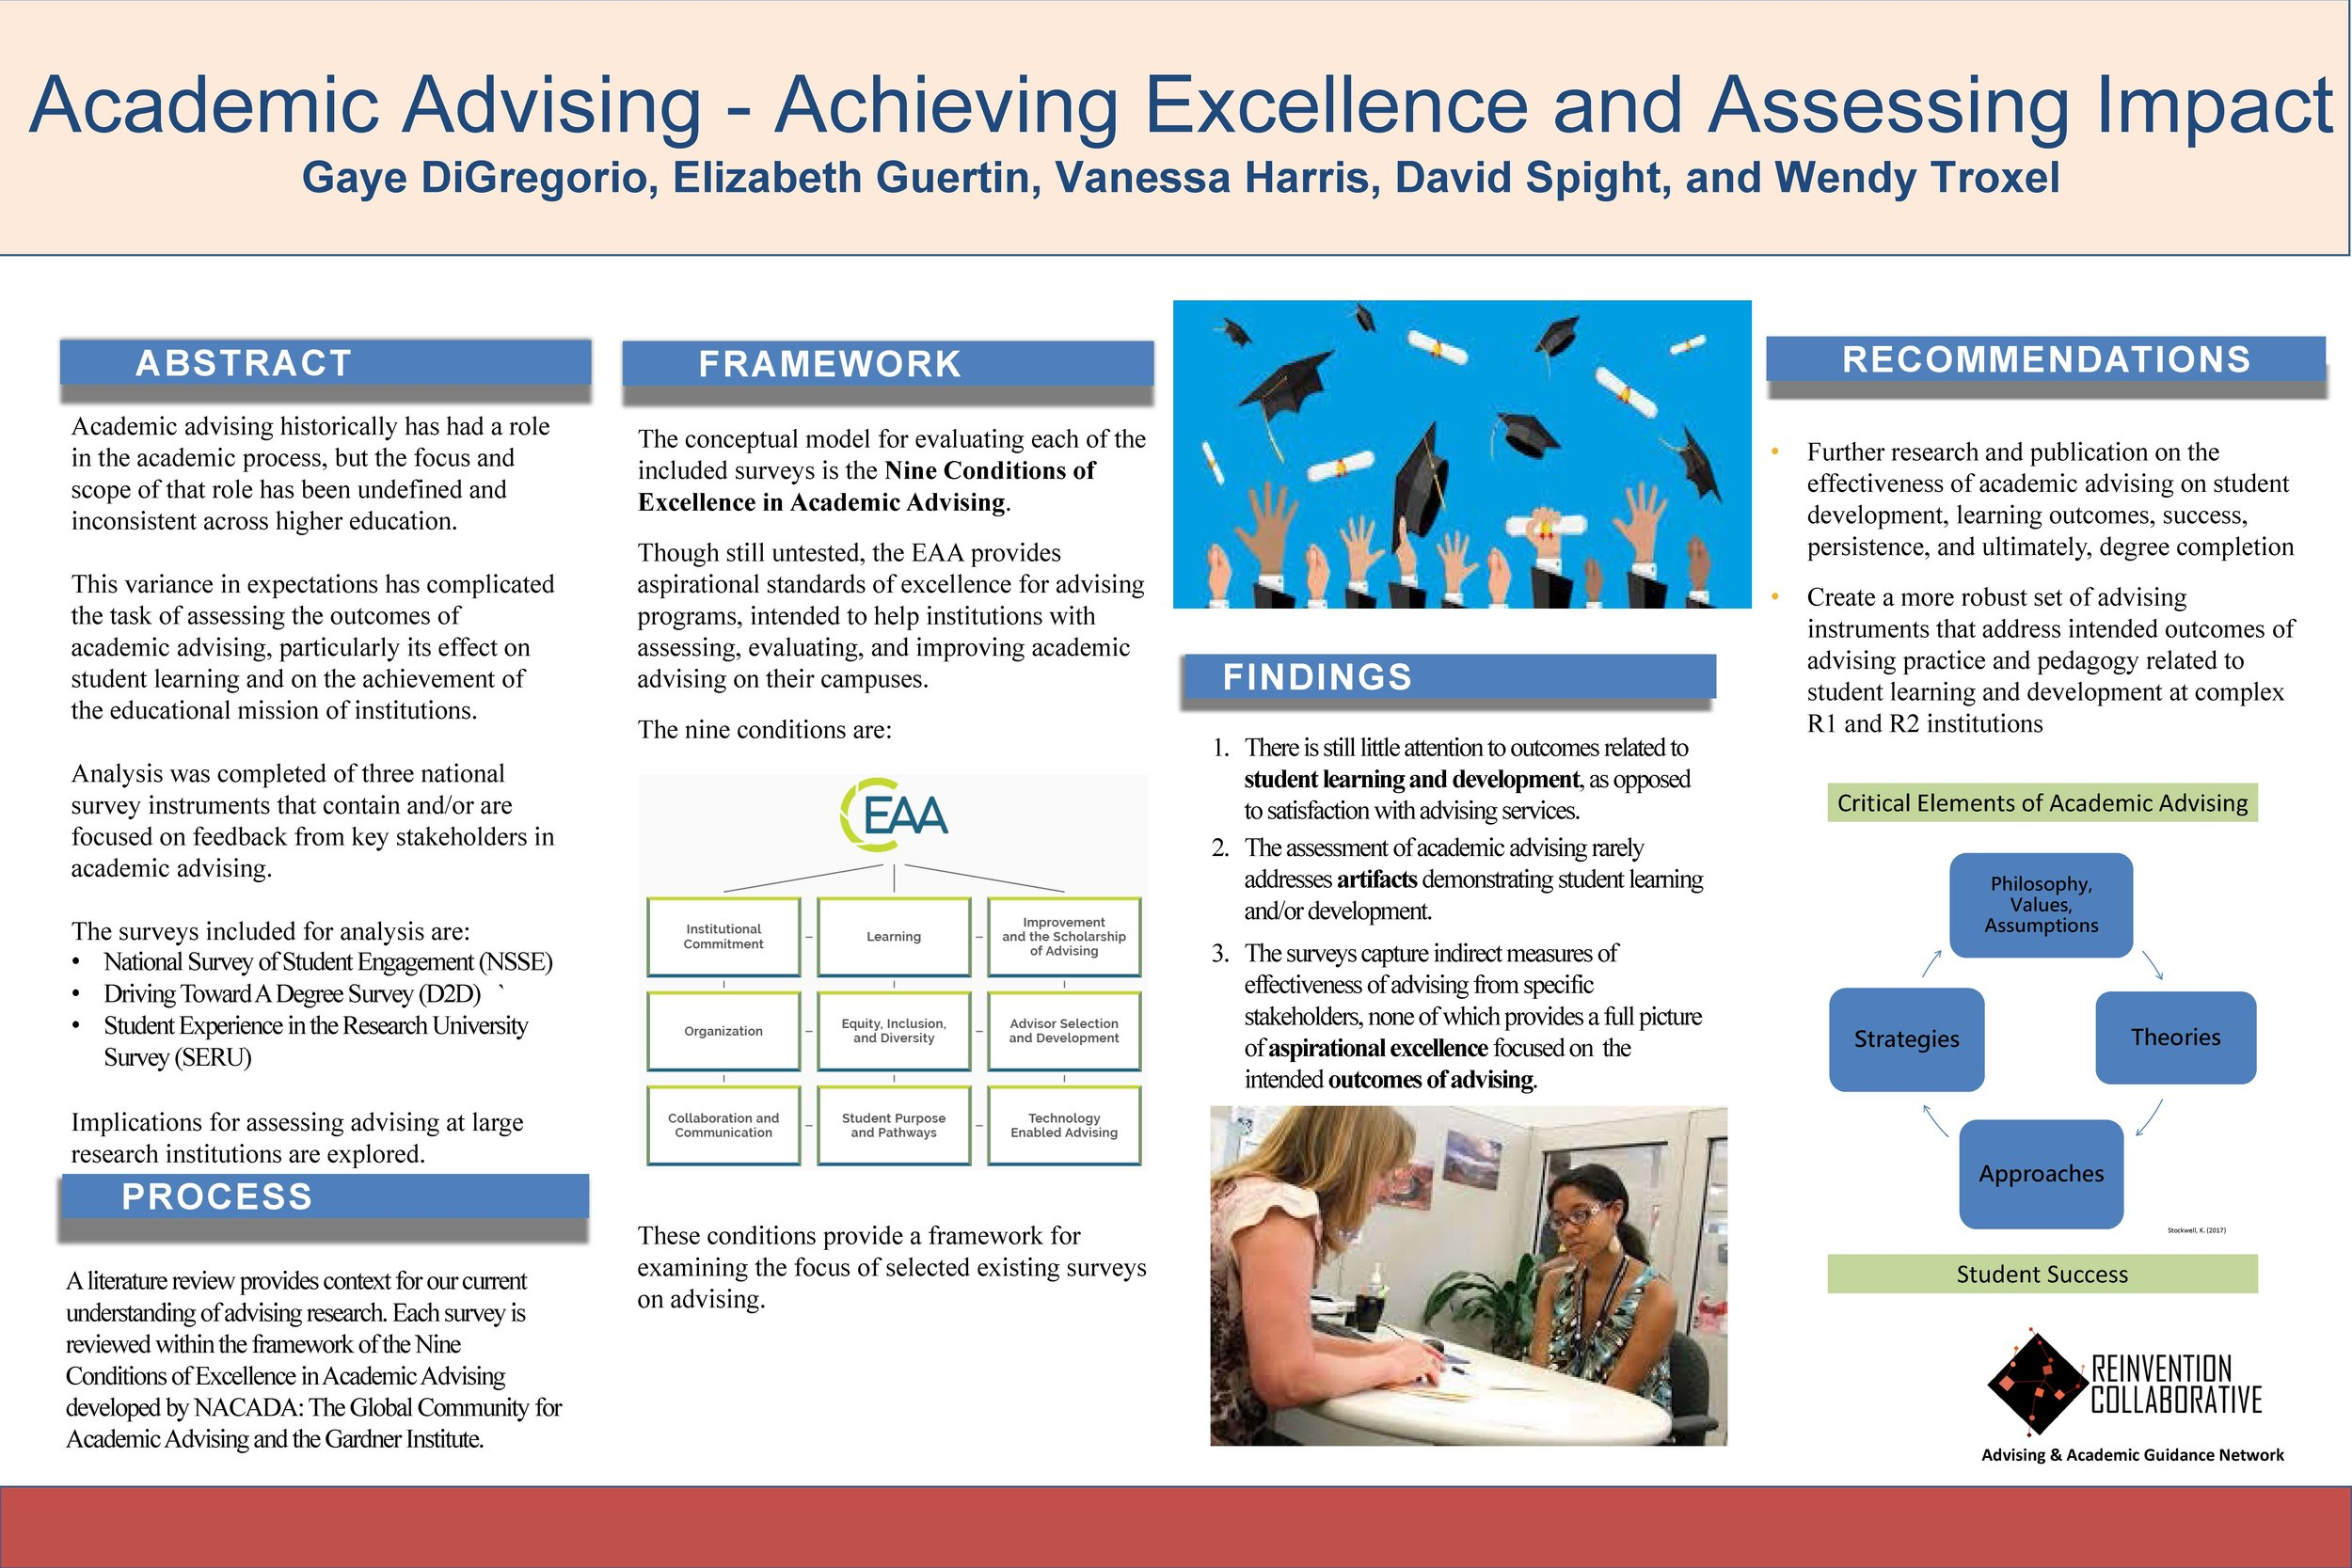 Academic Advising_Achieving Excellence and Assessing Impact_ Reinvention-Collab-Natl-Conf-Poster_ FINAL_Oct 18 2018.jpg